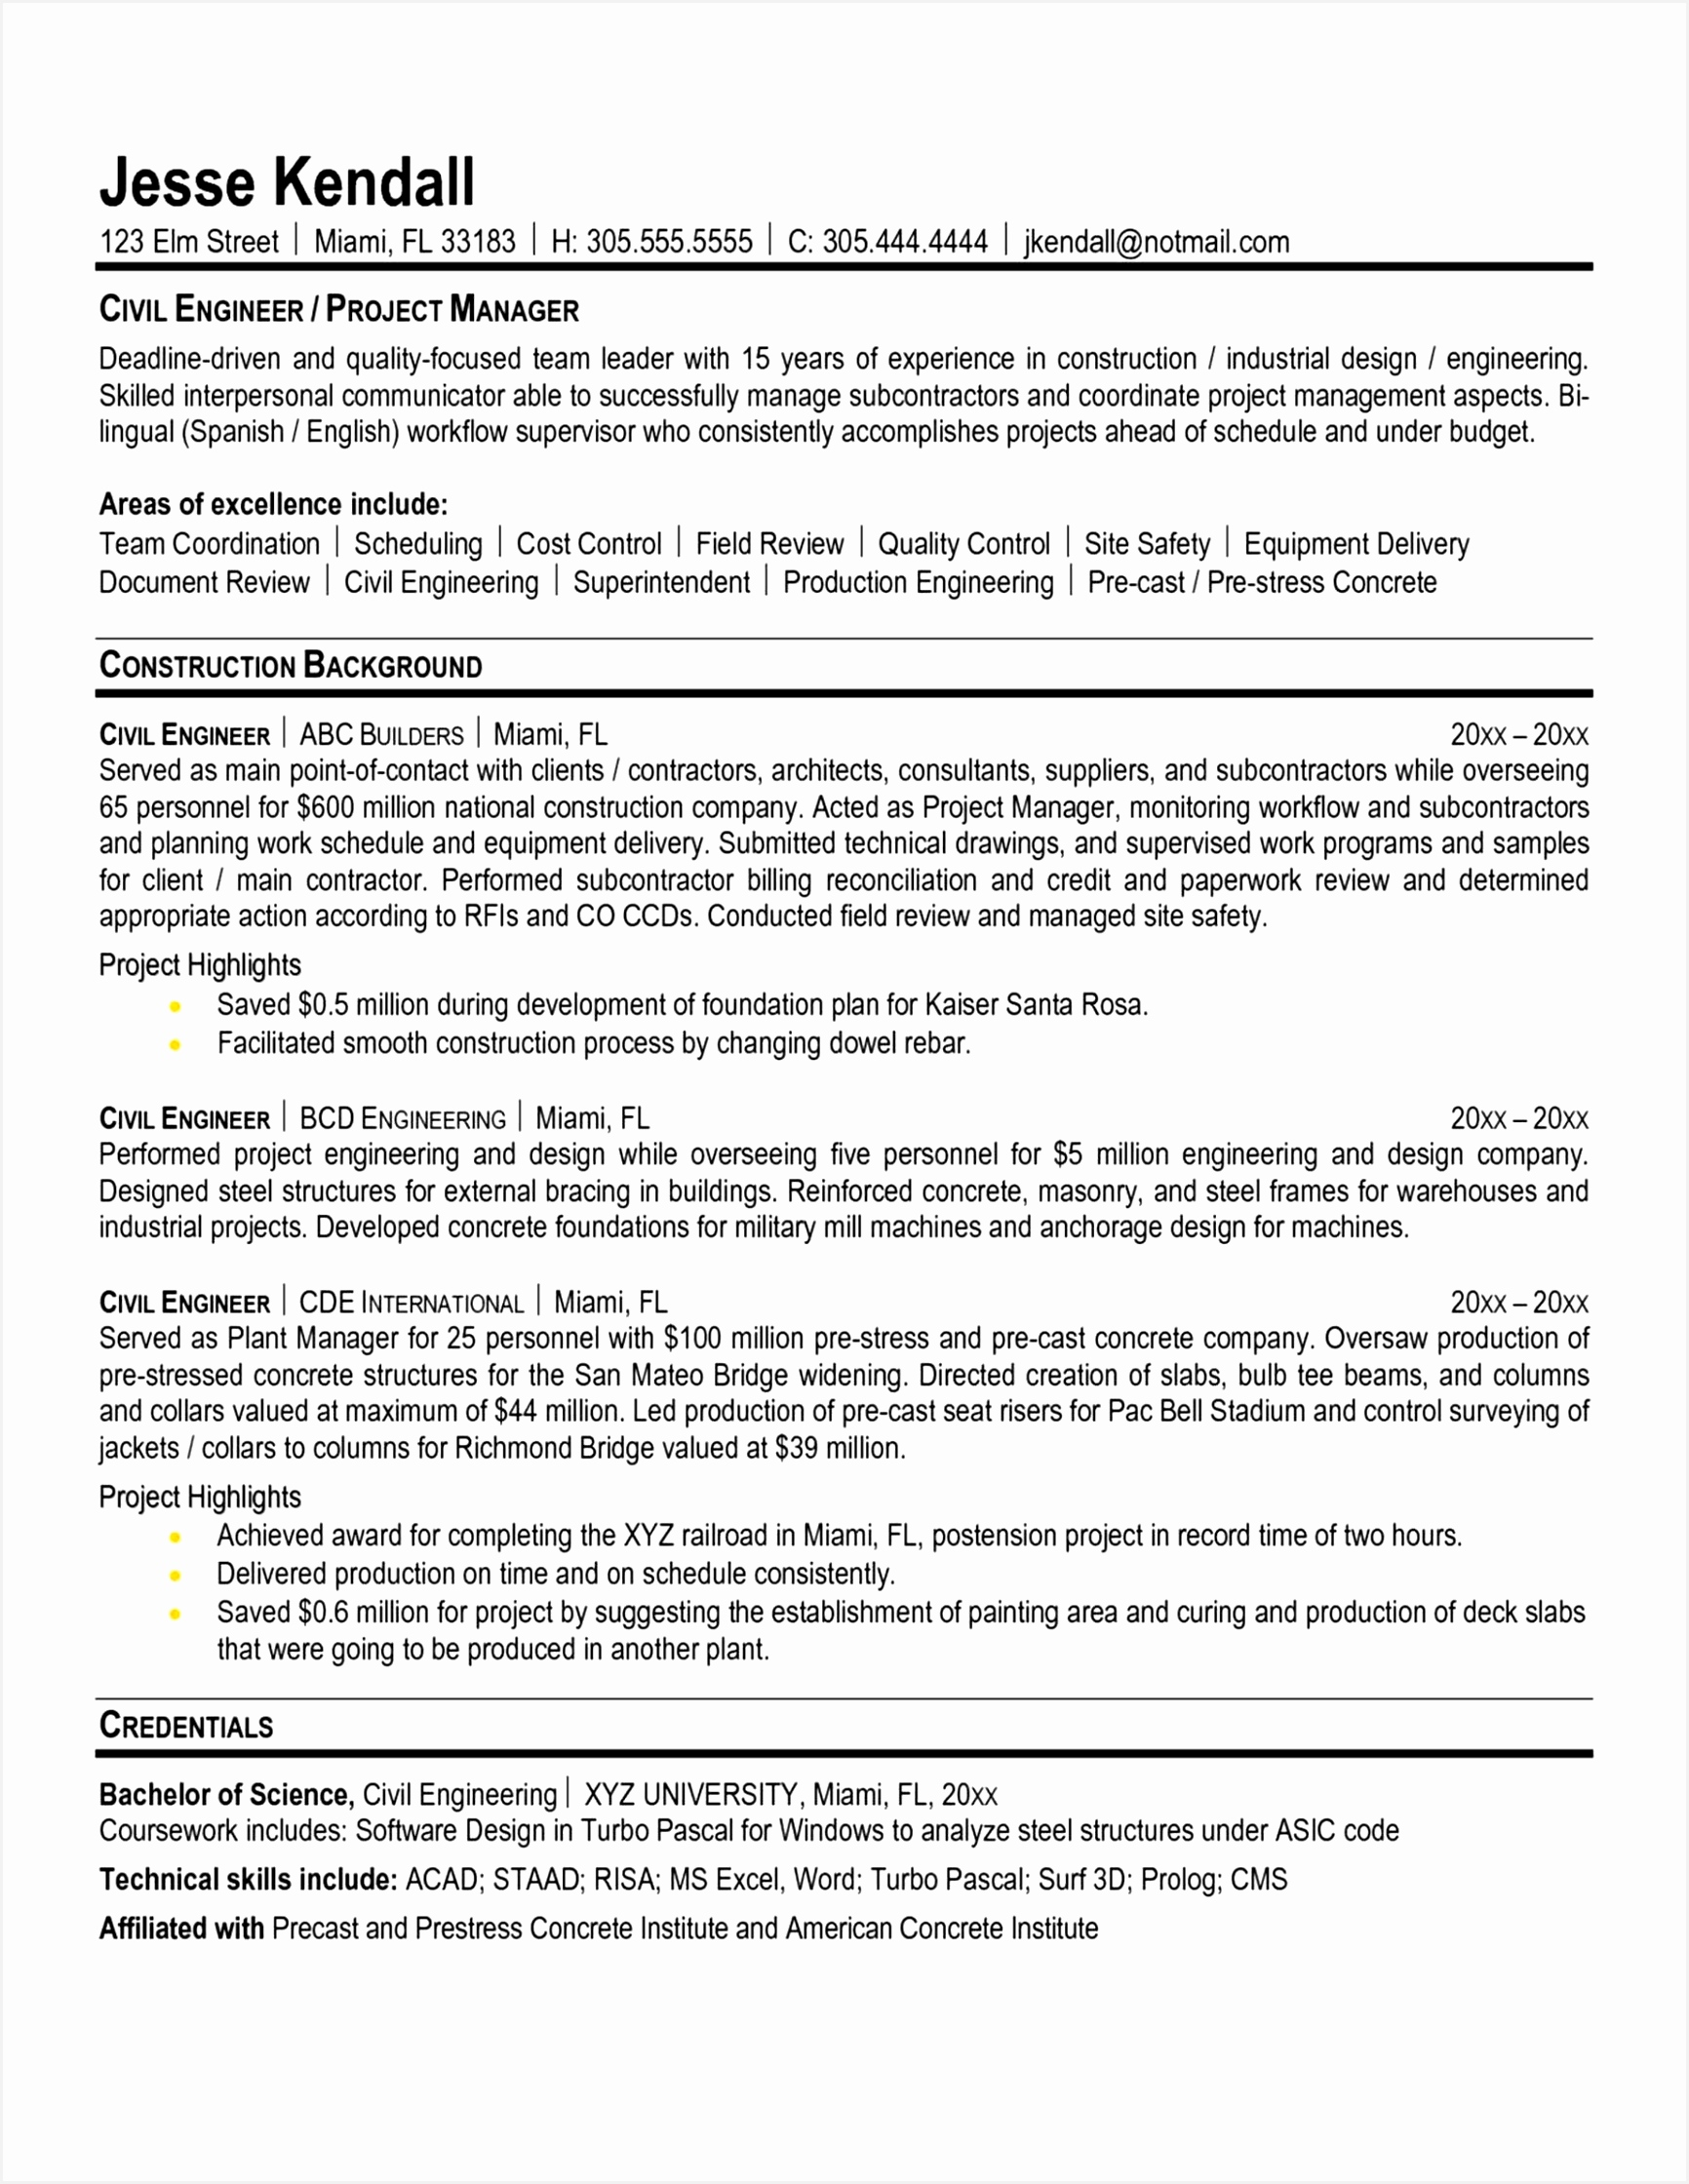 Contract Stress Engineer Sample Resume Nysfz Unique Quality assurance Director Resume — Resumes Project Of Contract Stress Engineer Sample Resume Nwweq Best Of Student Resume Template Beautiful Best Pr Resume Template Elegant